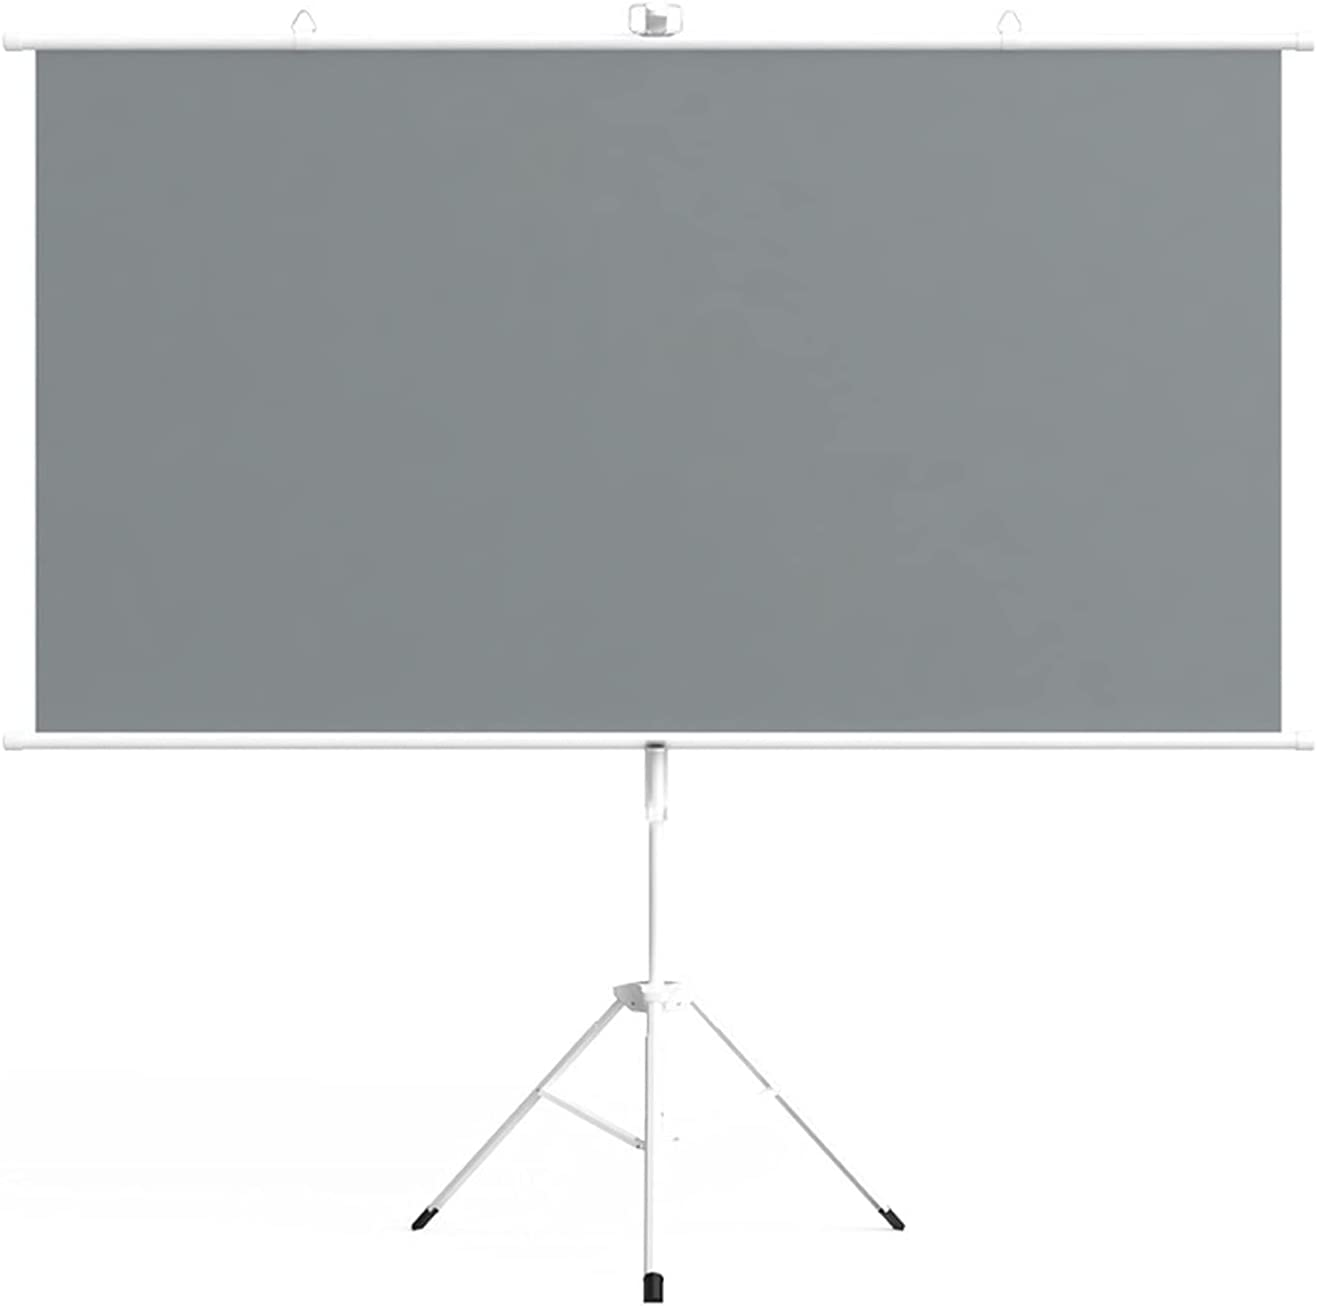 PHSH High-Definition Metal Projection Screen, Portable Screen, Can Be Wall-Mounted or Floor-to-Ceiling, Easy to Install and Operate, Suitable for Indoor and Outdoor Home Theater